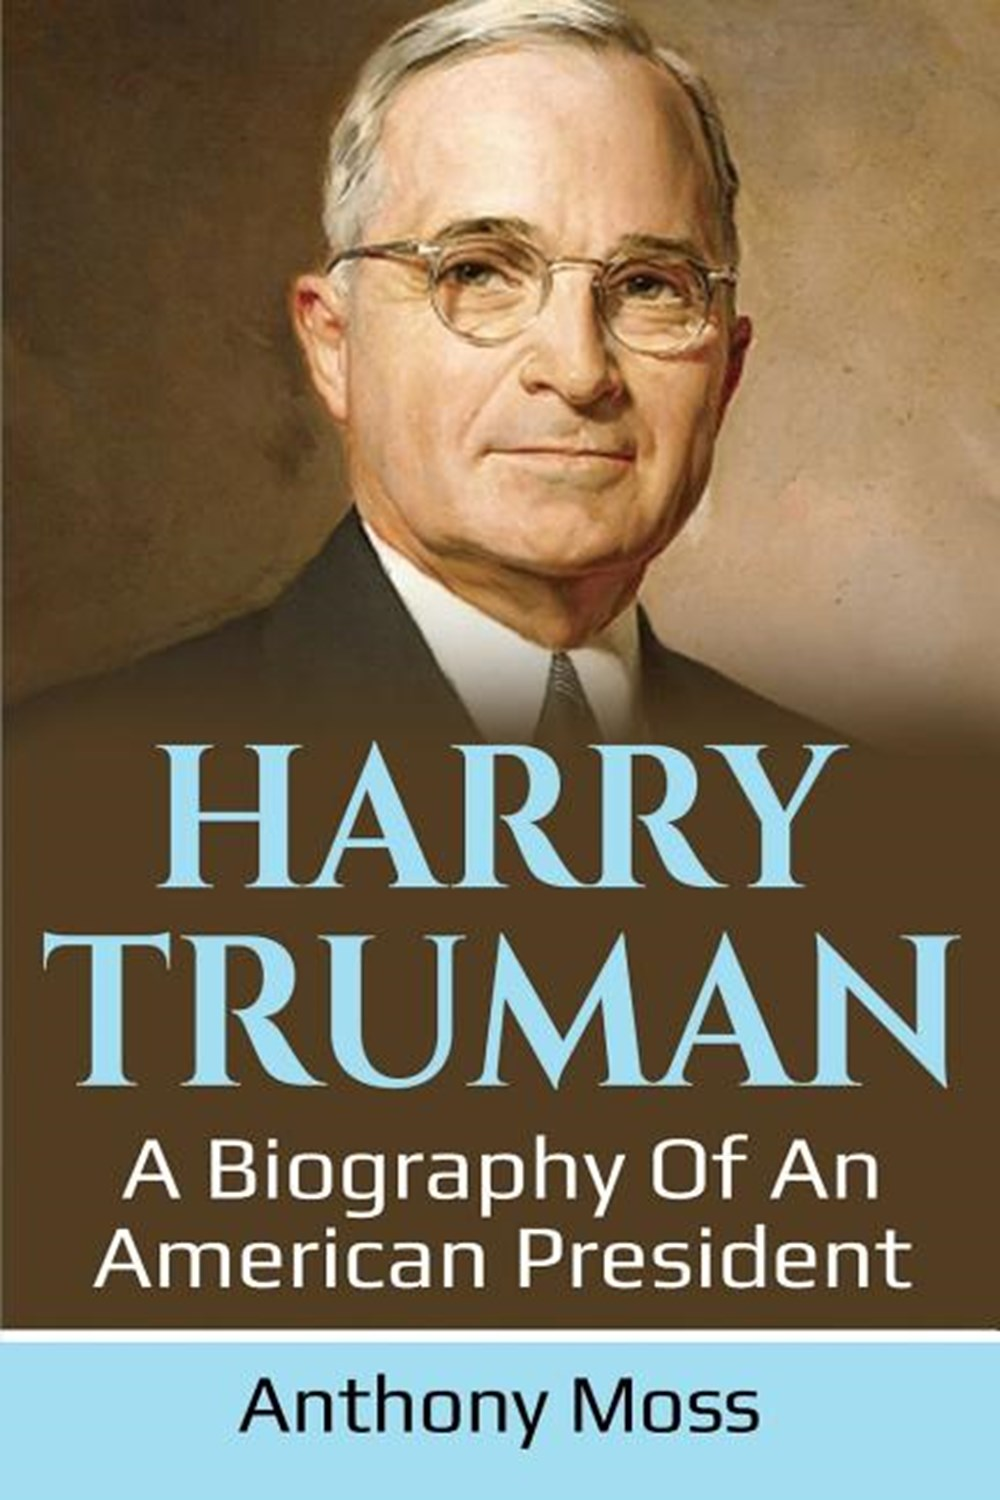 Harry Truman A biography of an American President